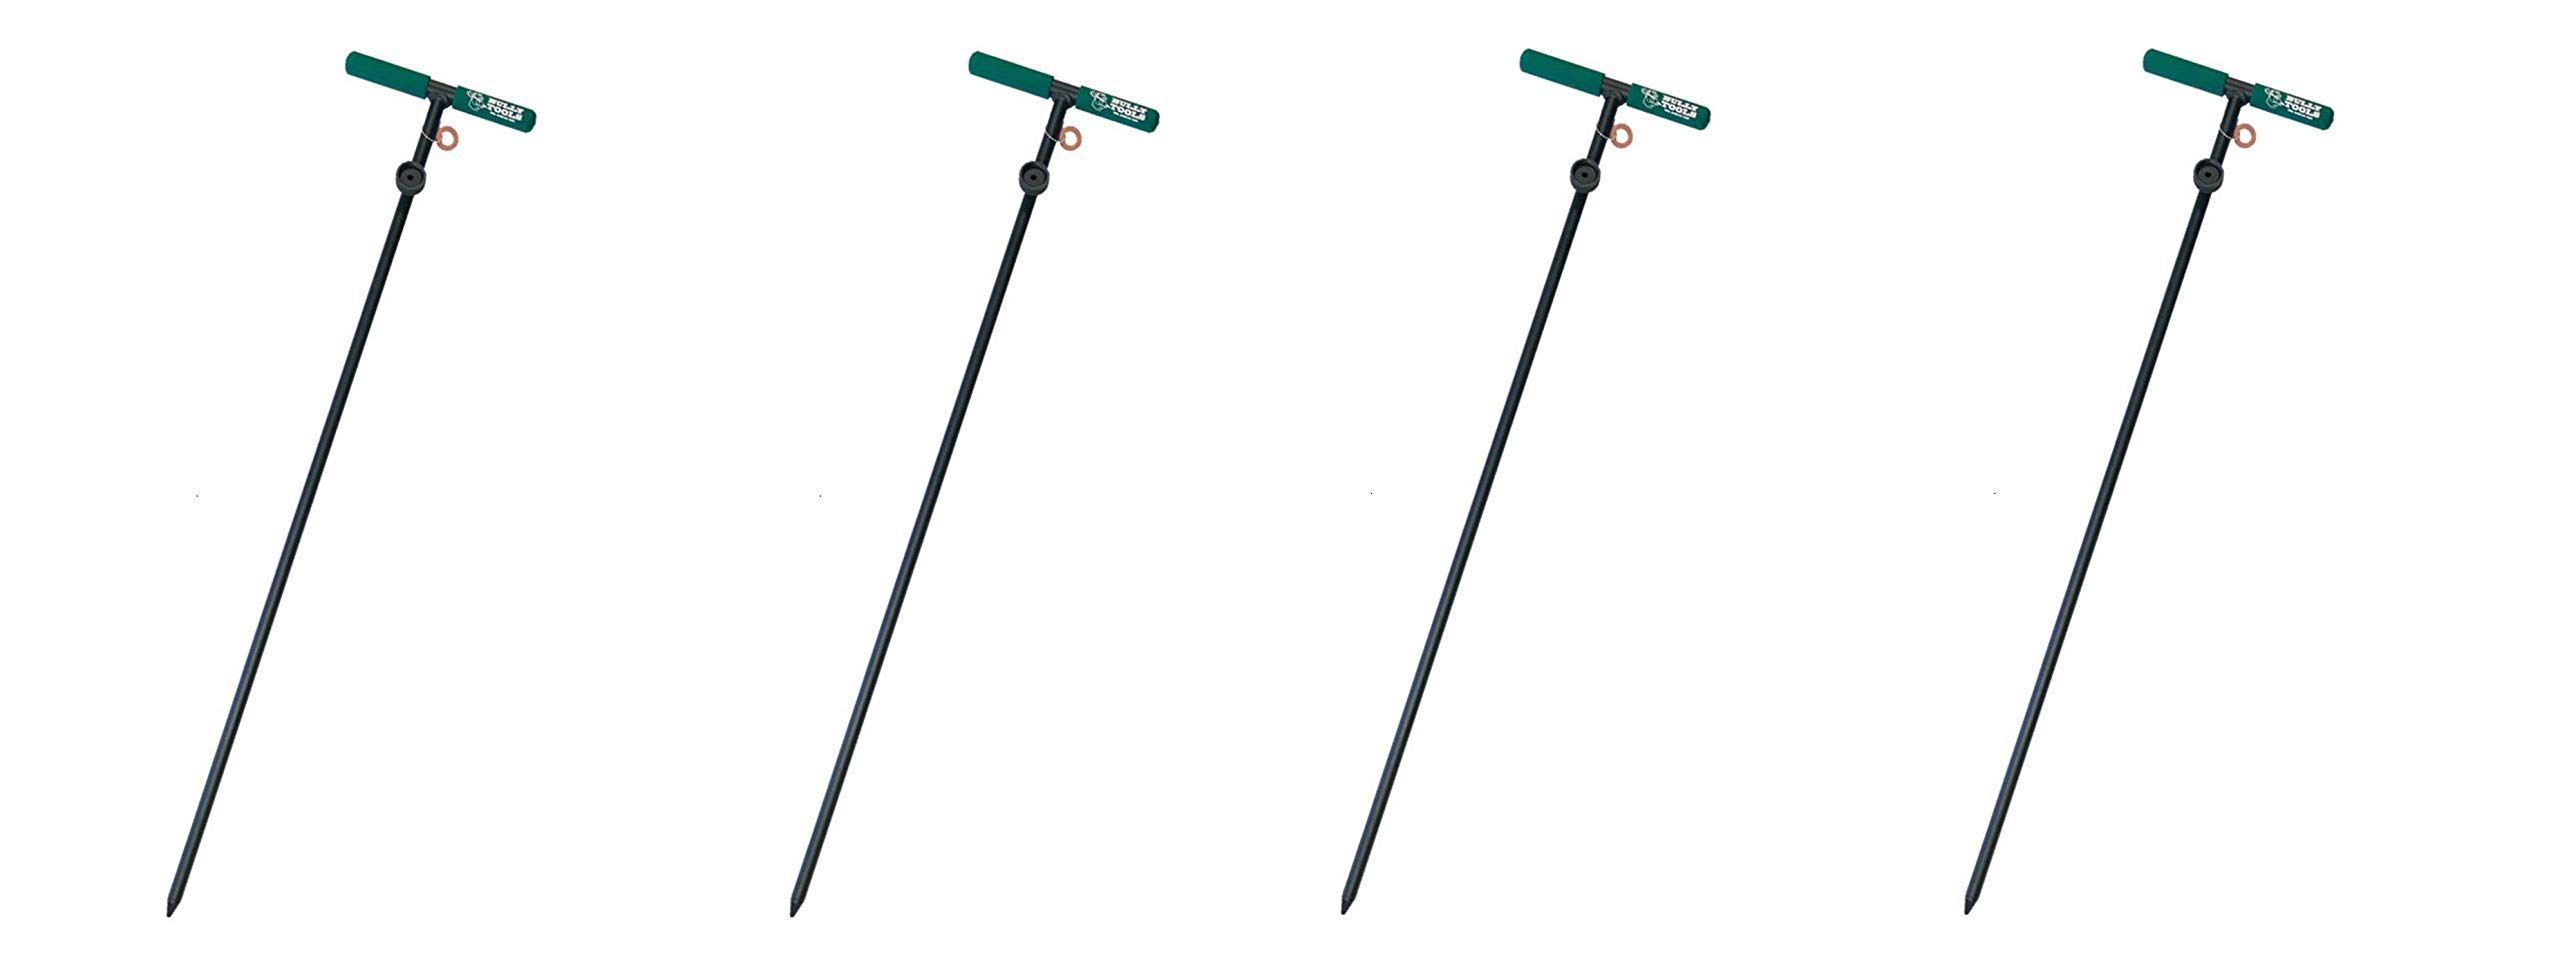 Bully Tools 92300 Root Soaker Irrigation Tool with Steel T-Style Handle (Pack of 4)